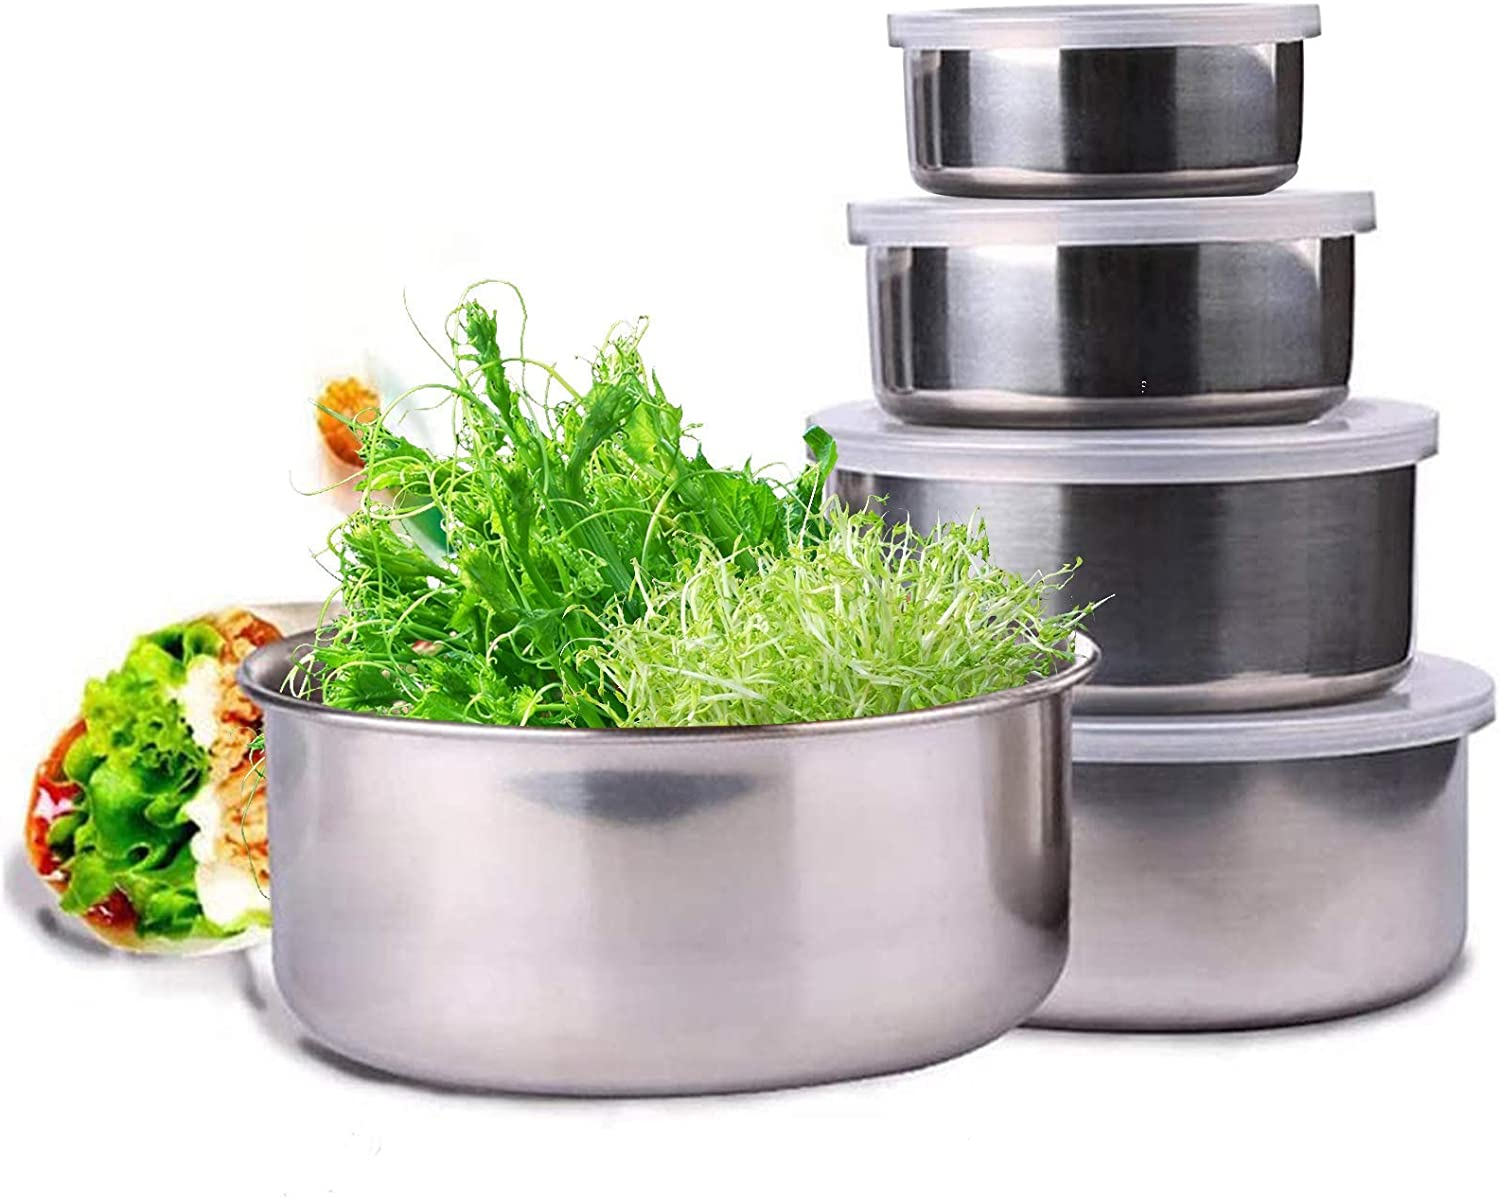 Stainless Steel Containers Bowls (Set of 5) Easy To Clean, Nesting Bowls for Space Saving Storage, Great for Cooking, Mixing,Prepping